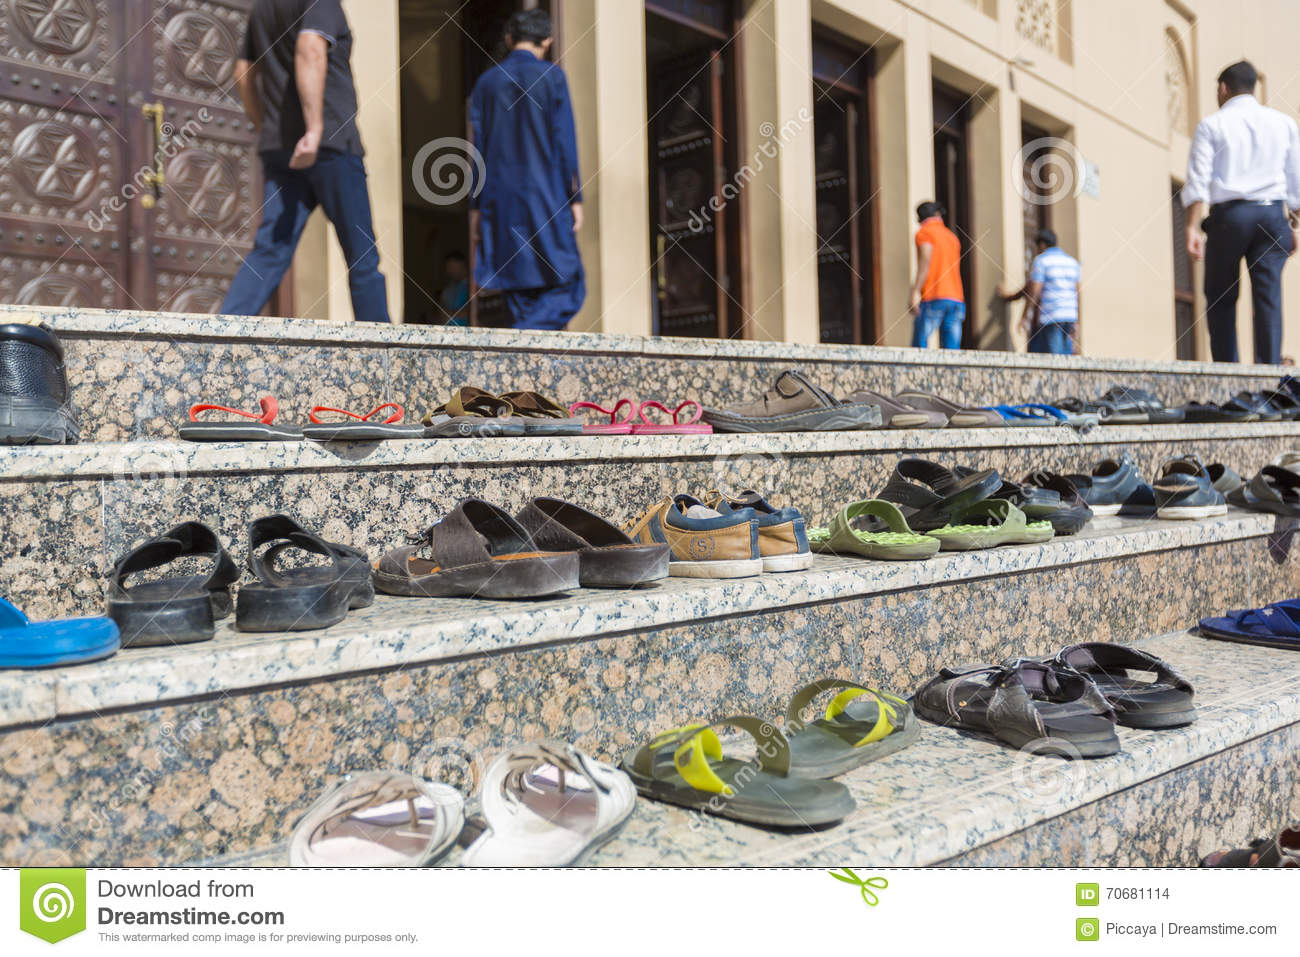 Islam and footwear international